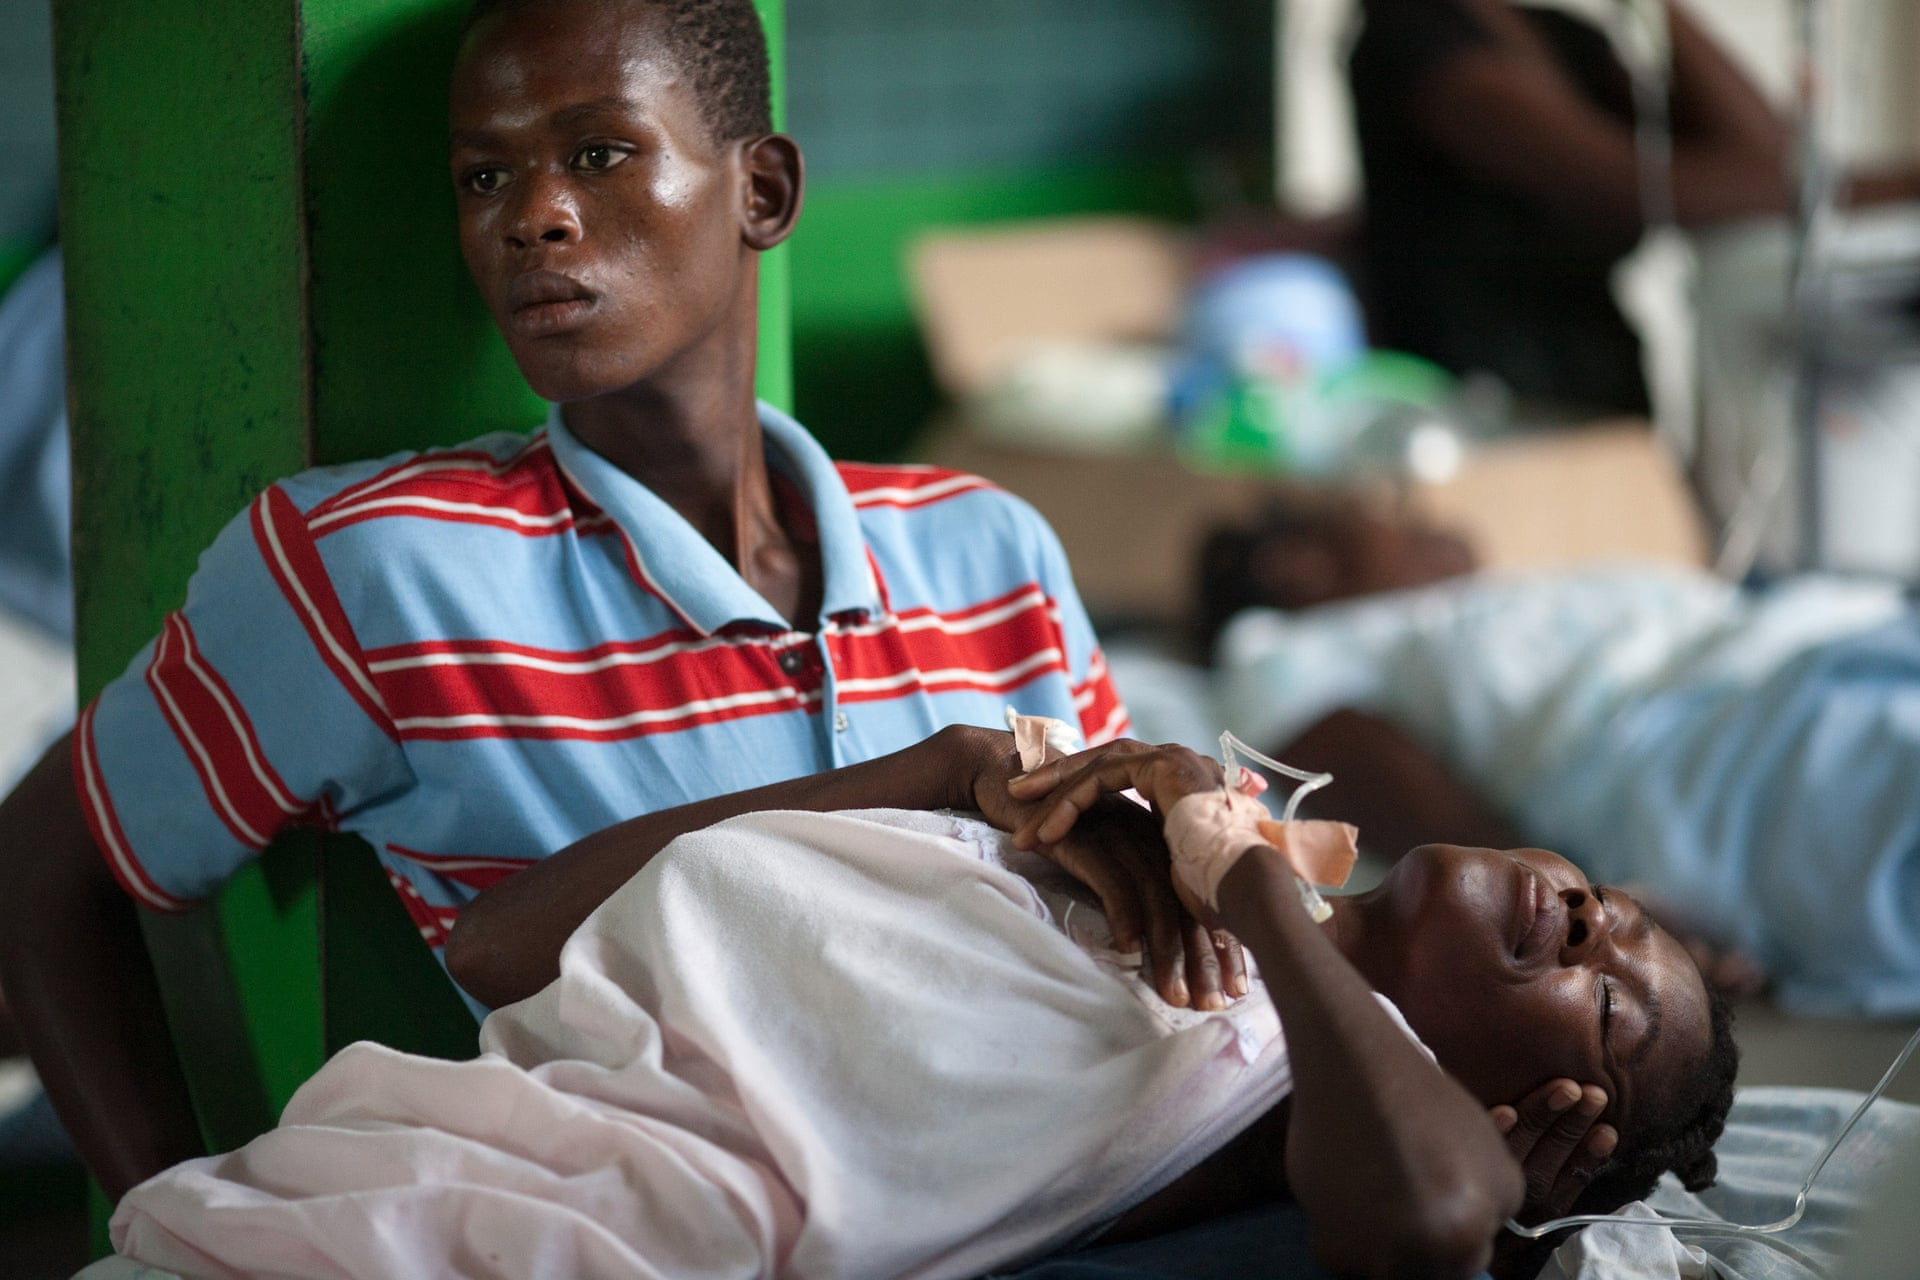 ON HAITI, ON DEVELOPMENT | How Haiti curbed cholera-vital lessons in dealing with a public health crisis